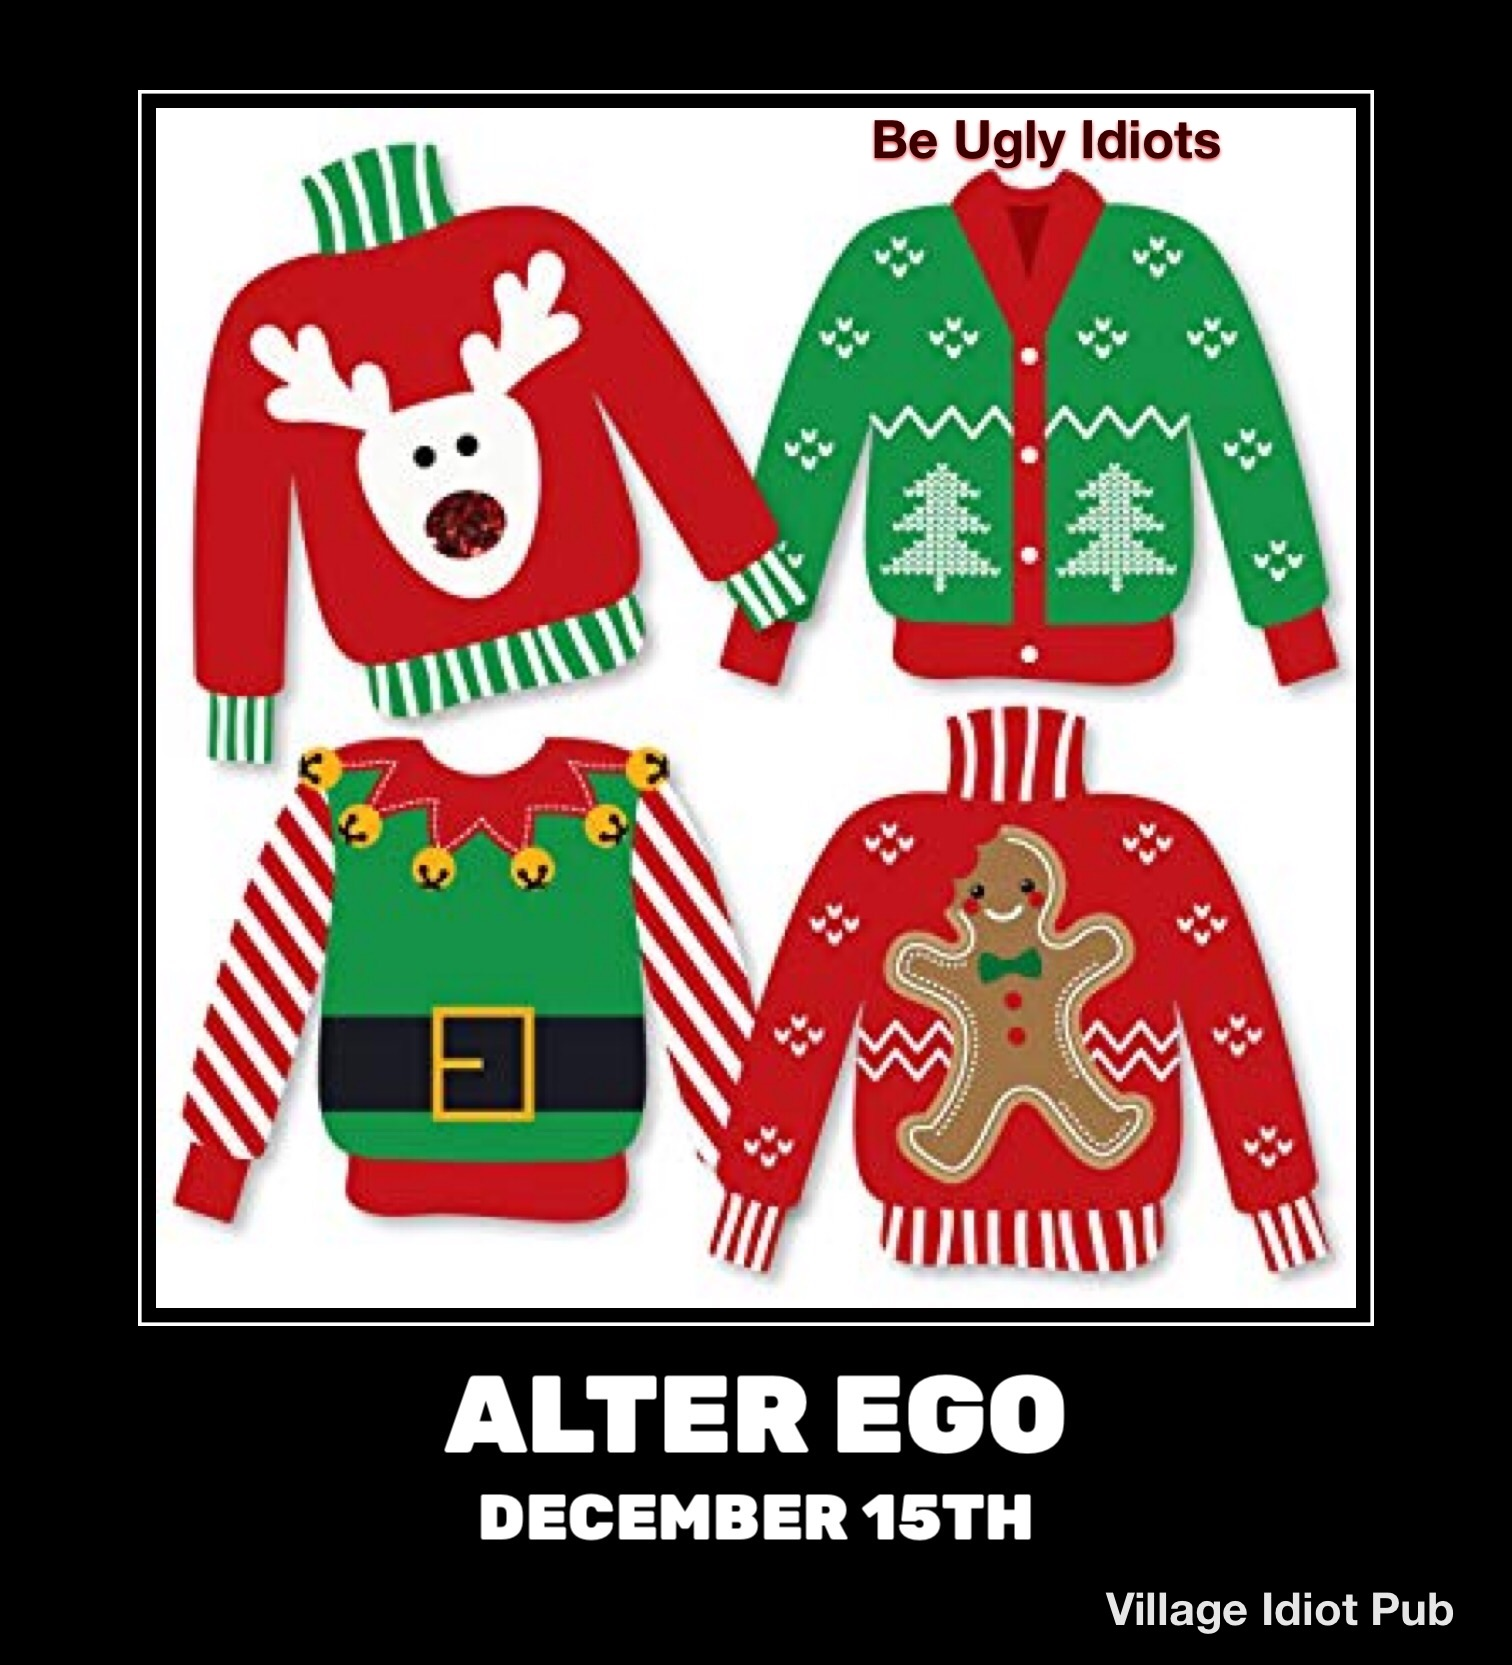 Be Ugly Idiots with Alter Ego on December 15 at Village Idiot Pub